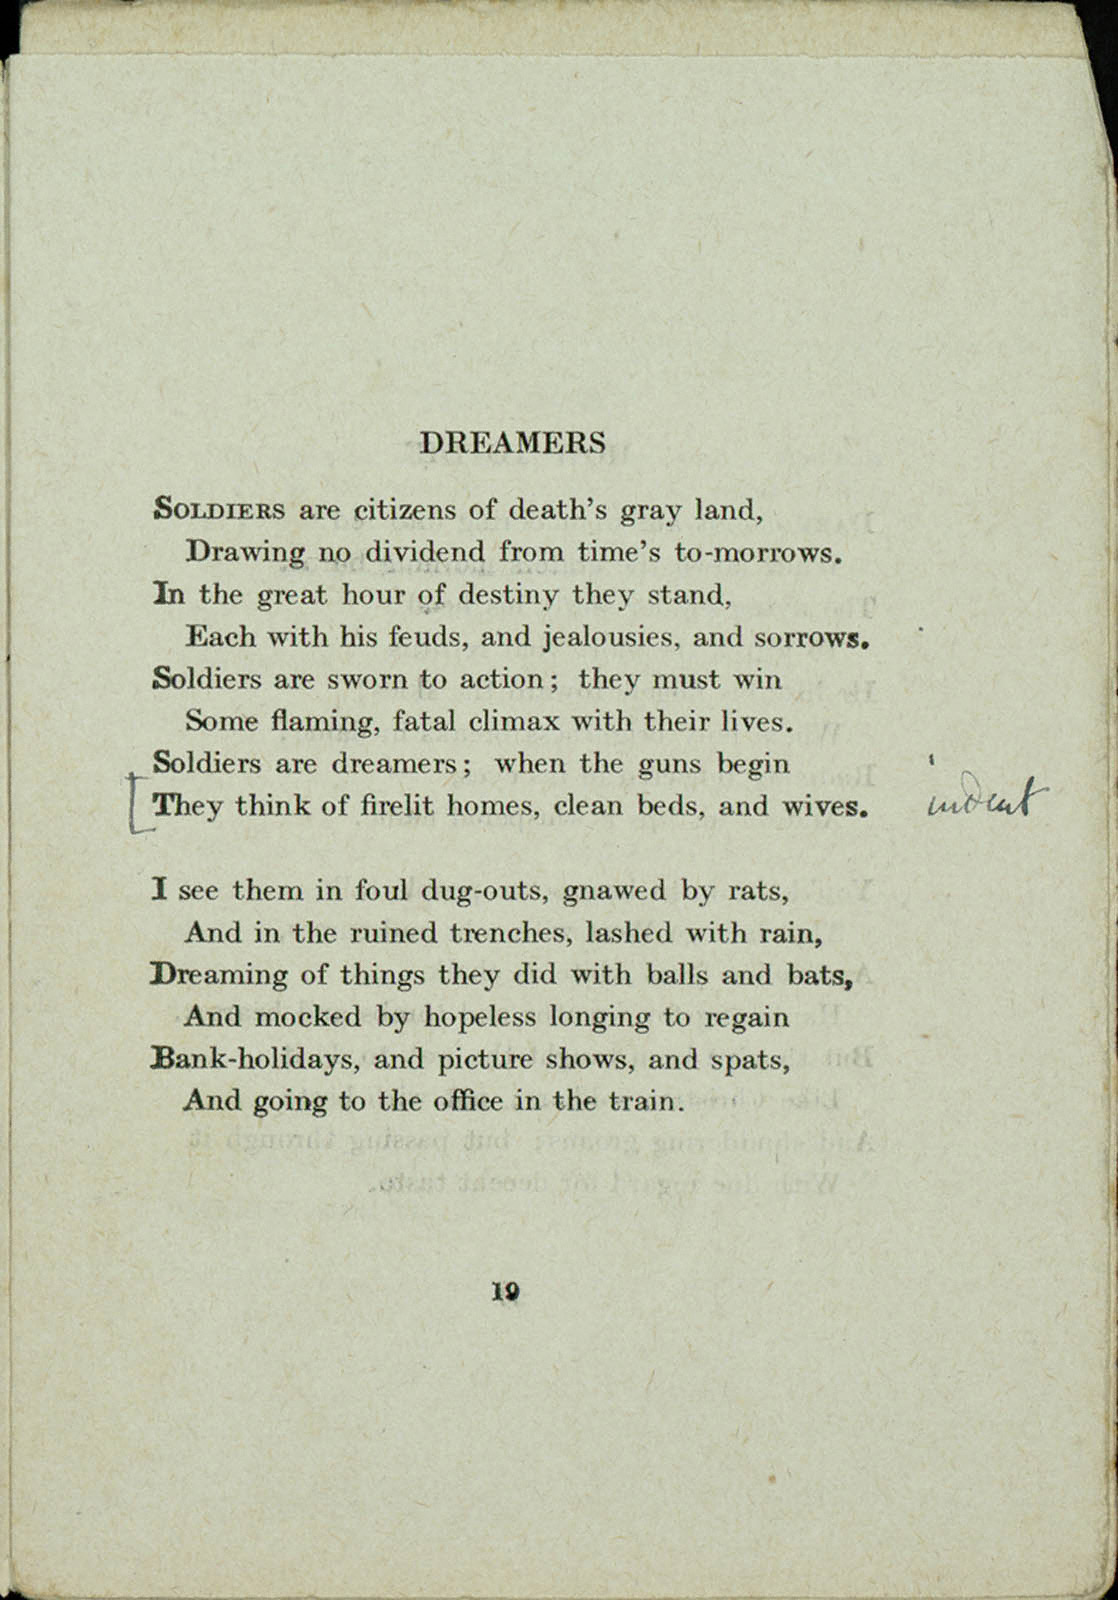 an analysis of the poem dreamers by siegfried sassoon Dreamers analysis siegfried sassoon critical analysis of poem, review school overview dreamers analysis siegfried sassoon characters archetypes.